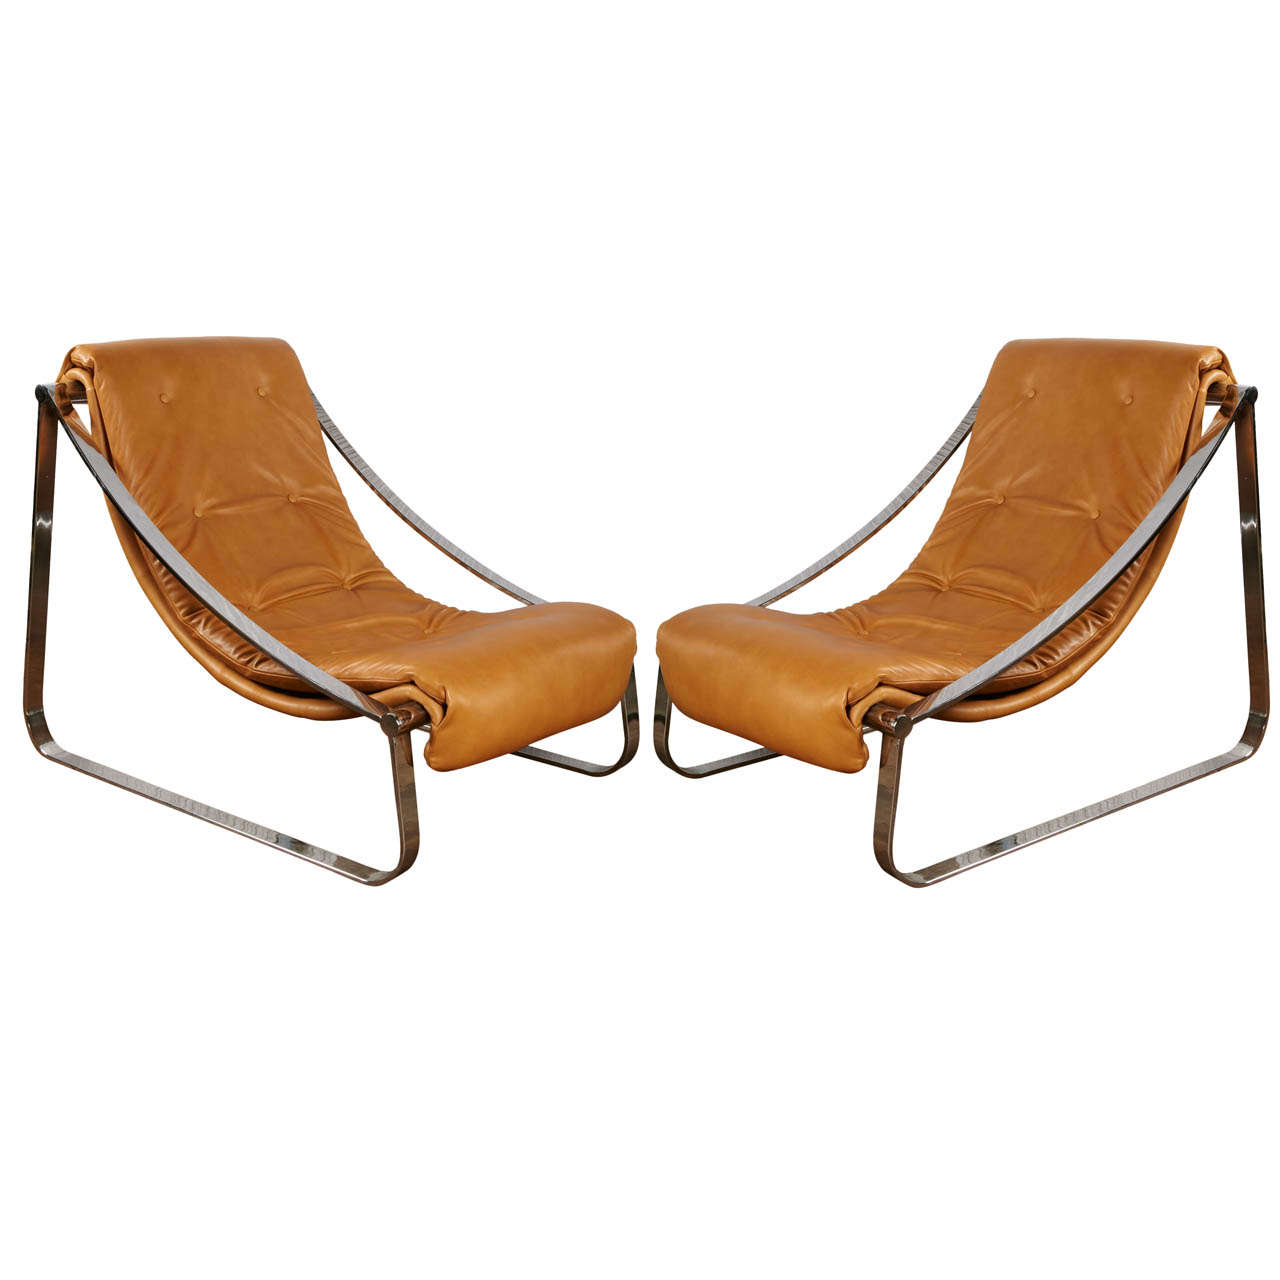 1970 s Pair of Armchair at 1stdibs